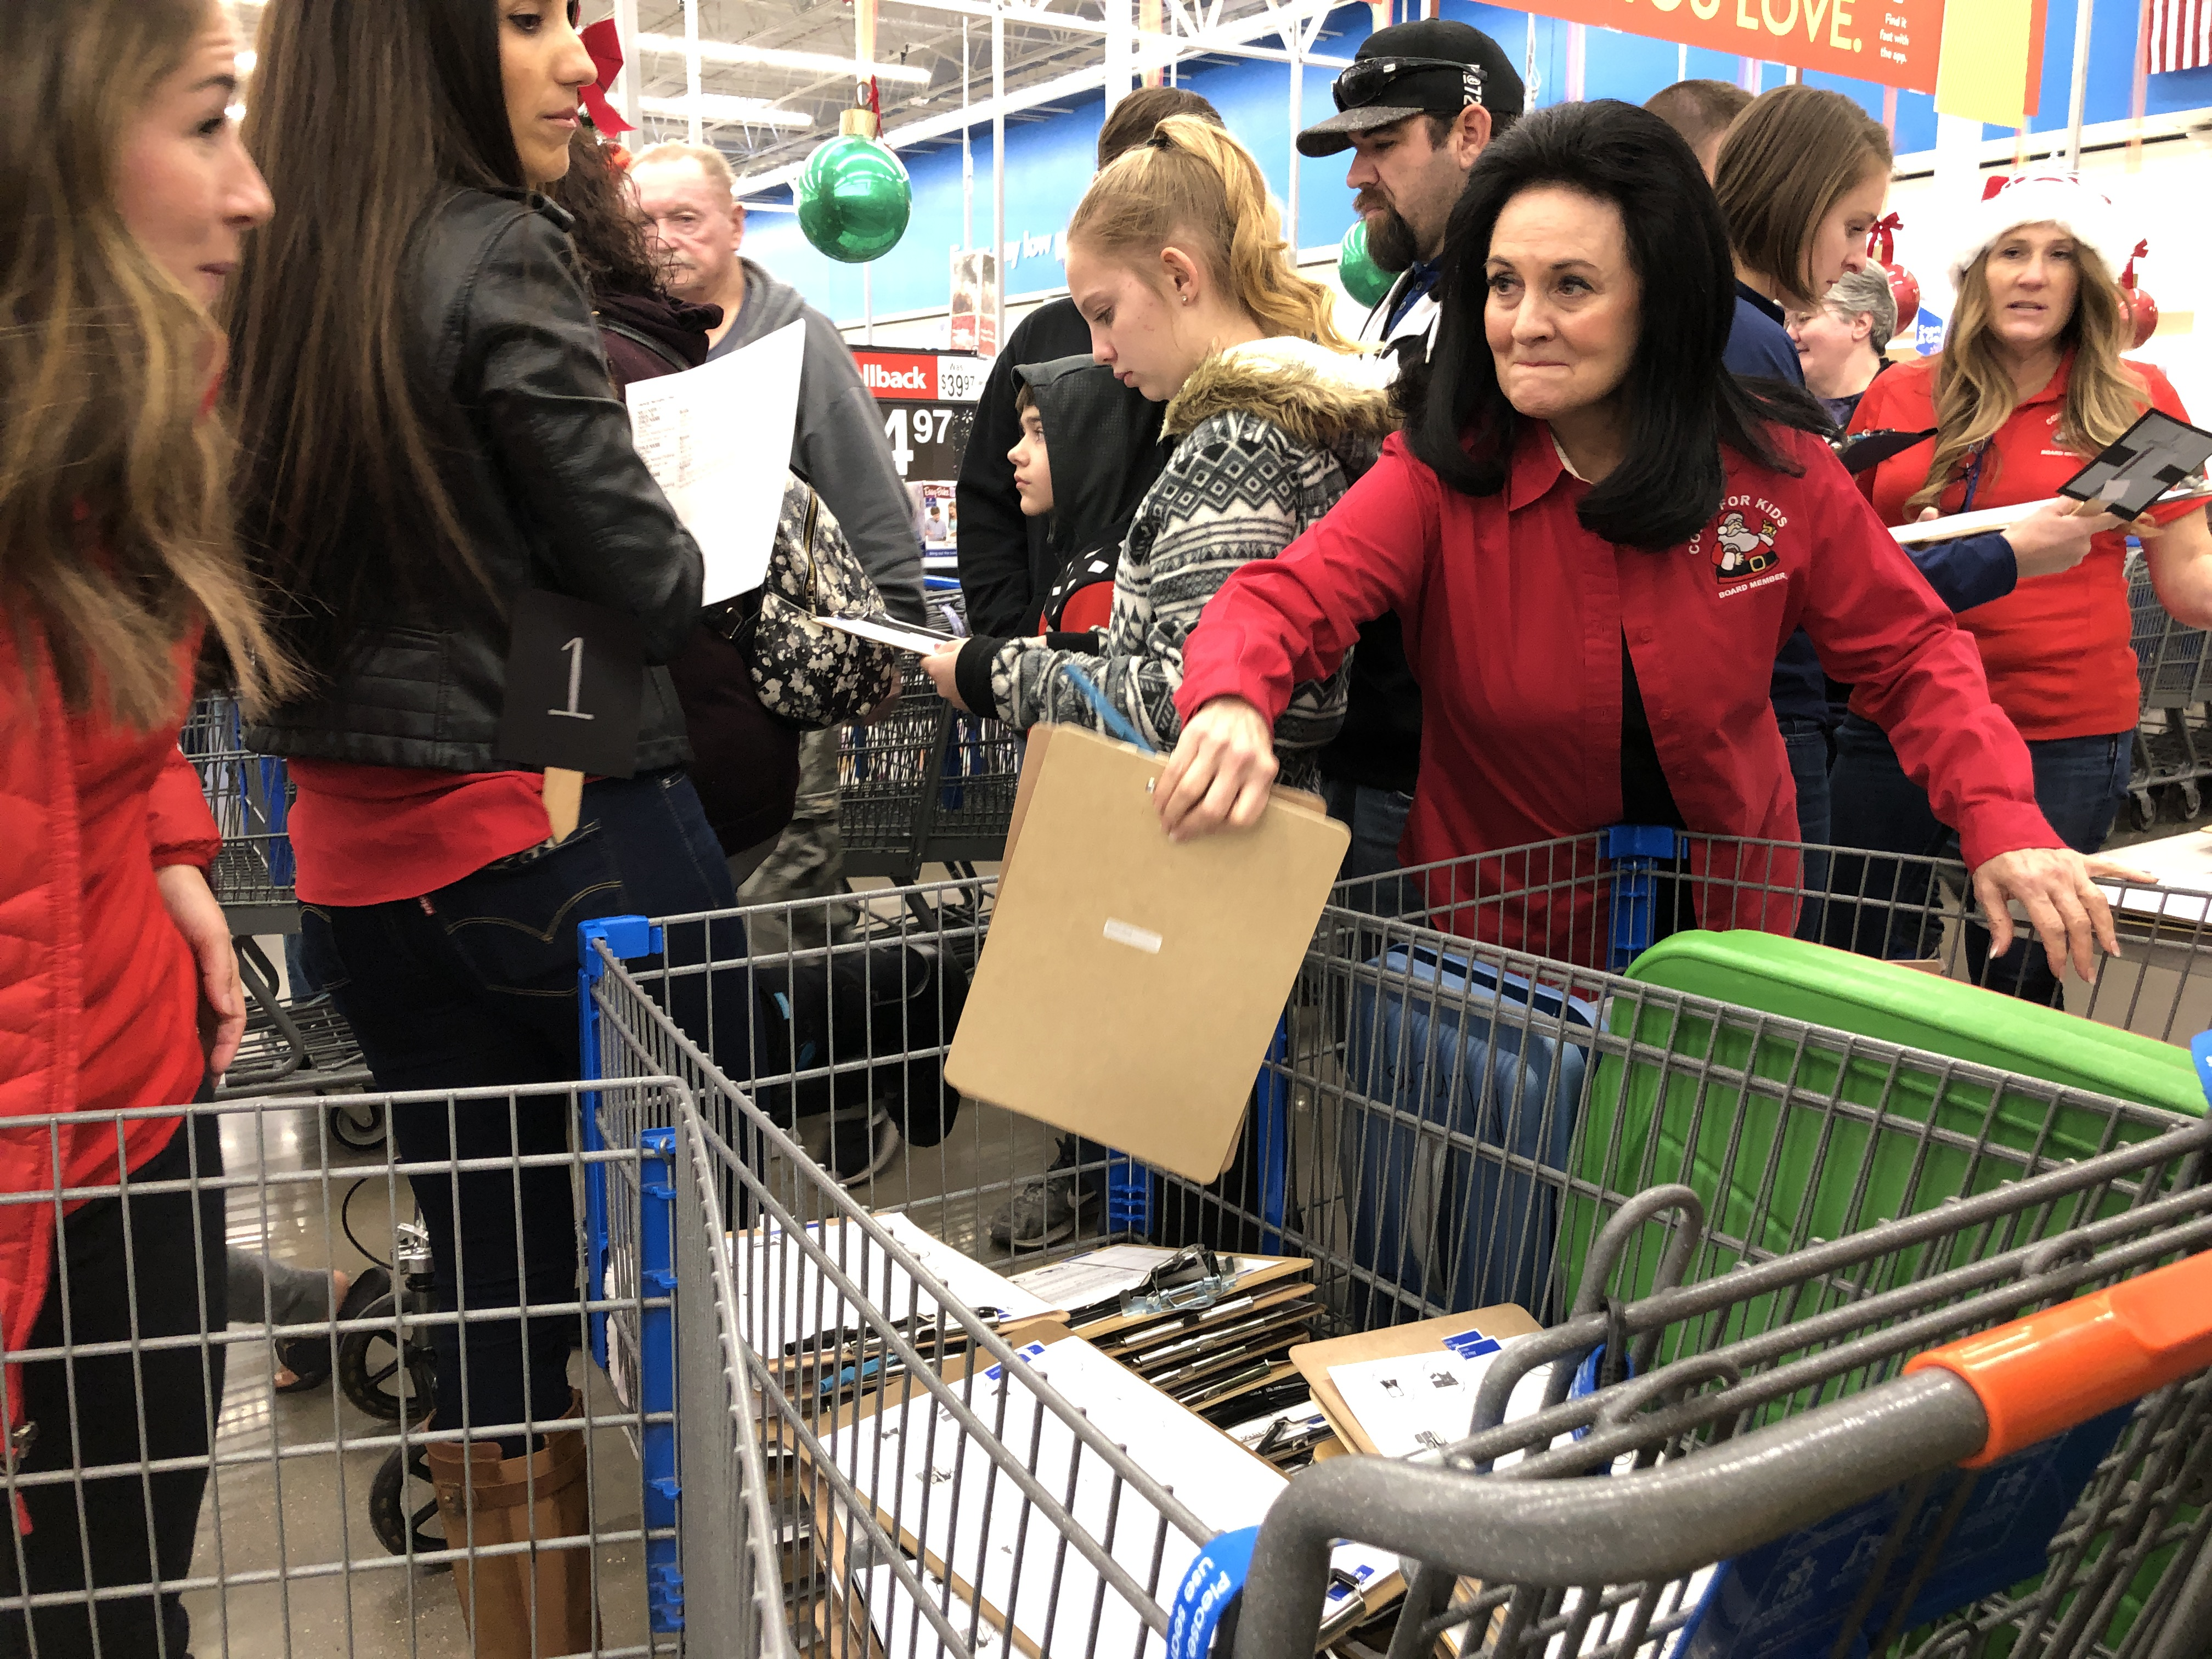 Christmas 2020 Volunteer Opportunities St George Ut Hundreds of smiling faces line up to volunteer for KONY's Coins